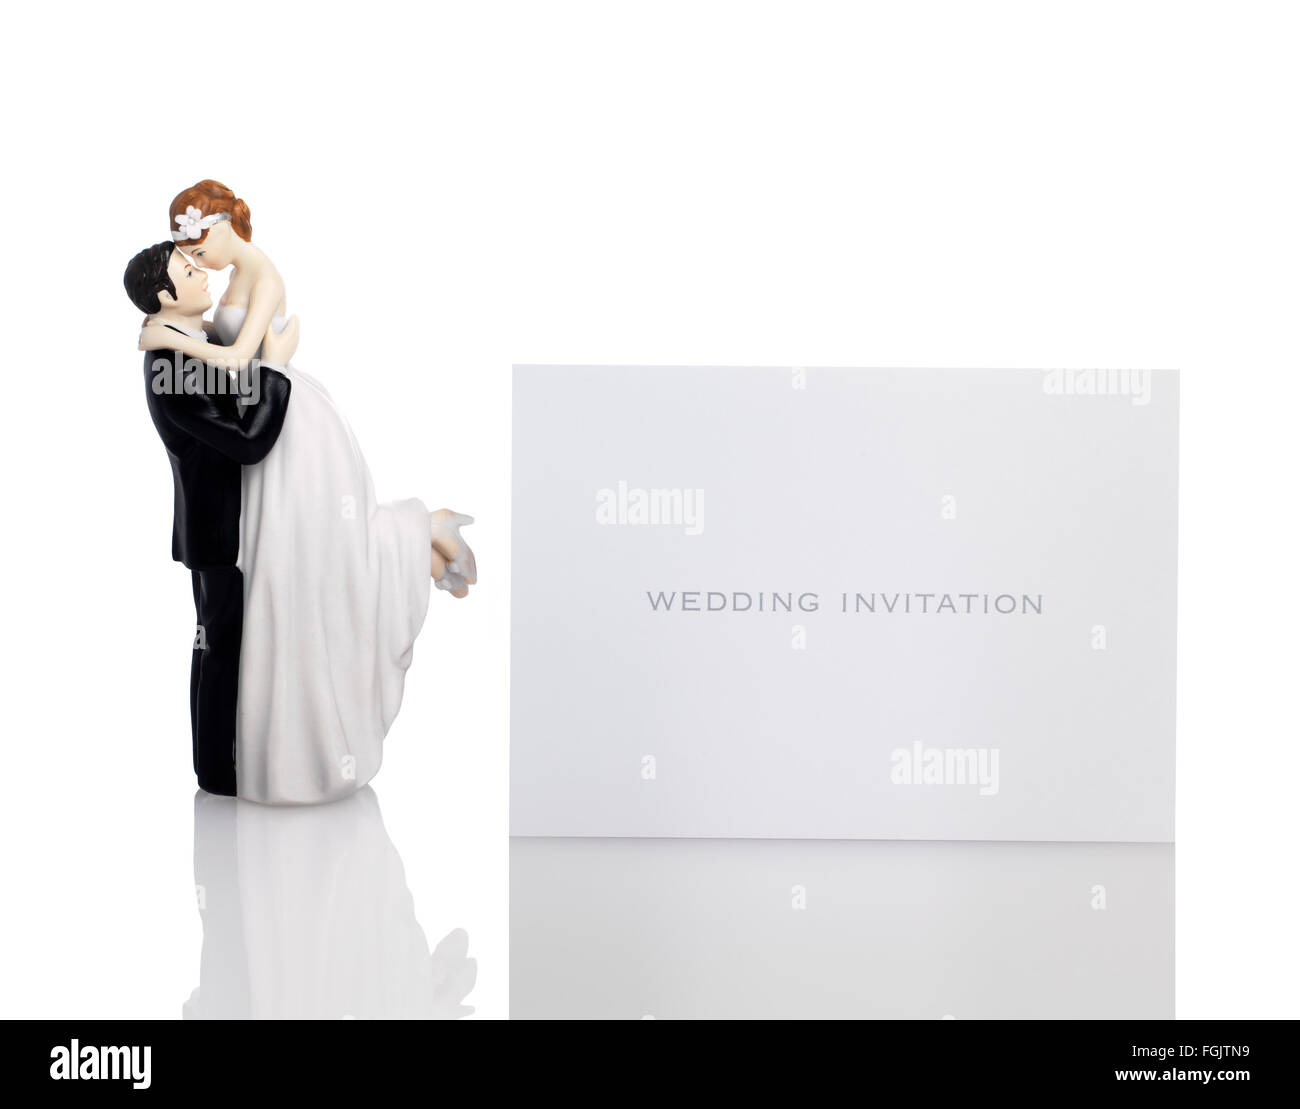 Bride and Groom with a wedding invitation - Stock Image